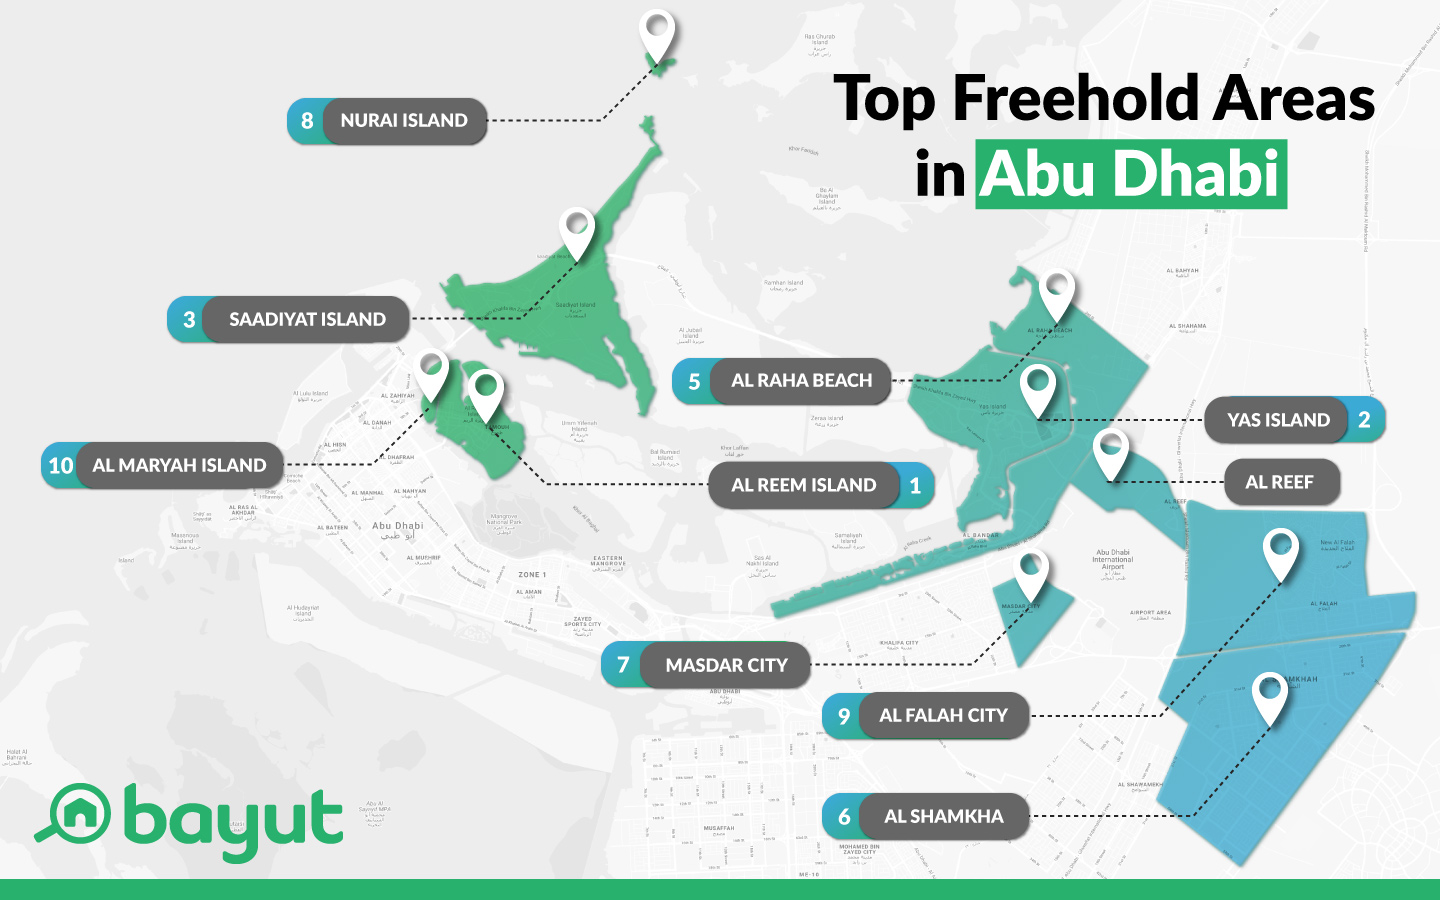 Map of Abu Dhabi with freehold areas for foreign investment